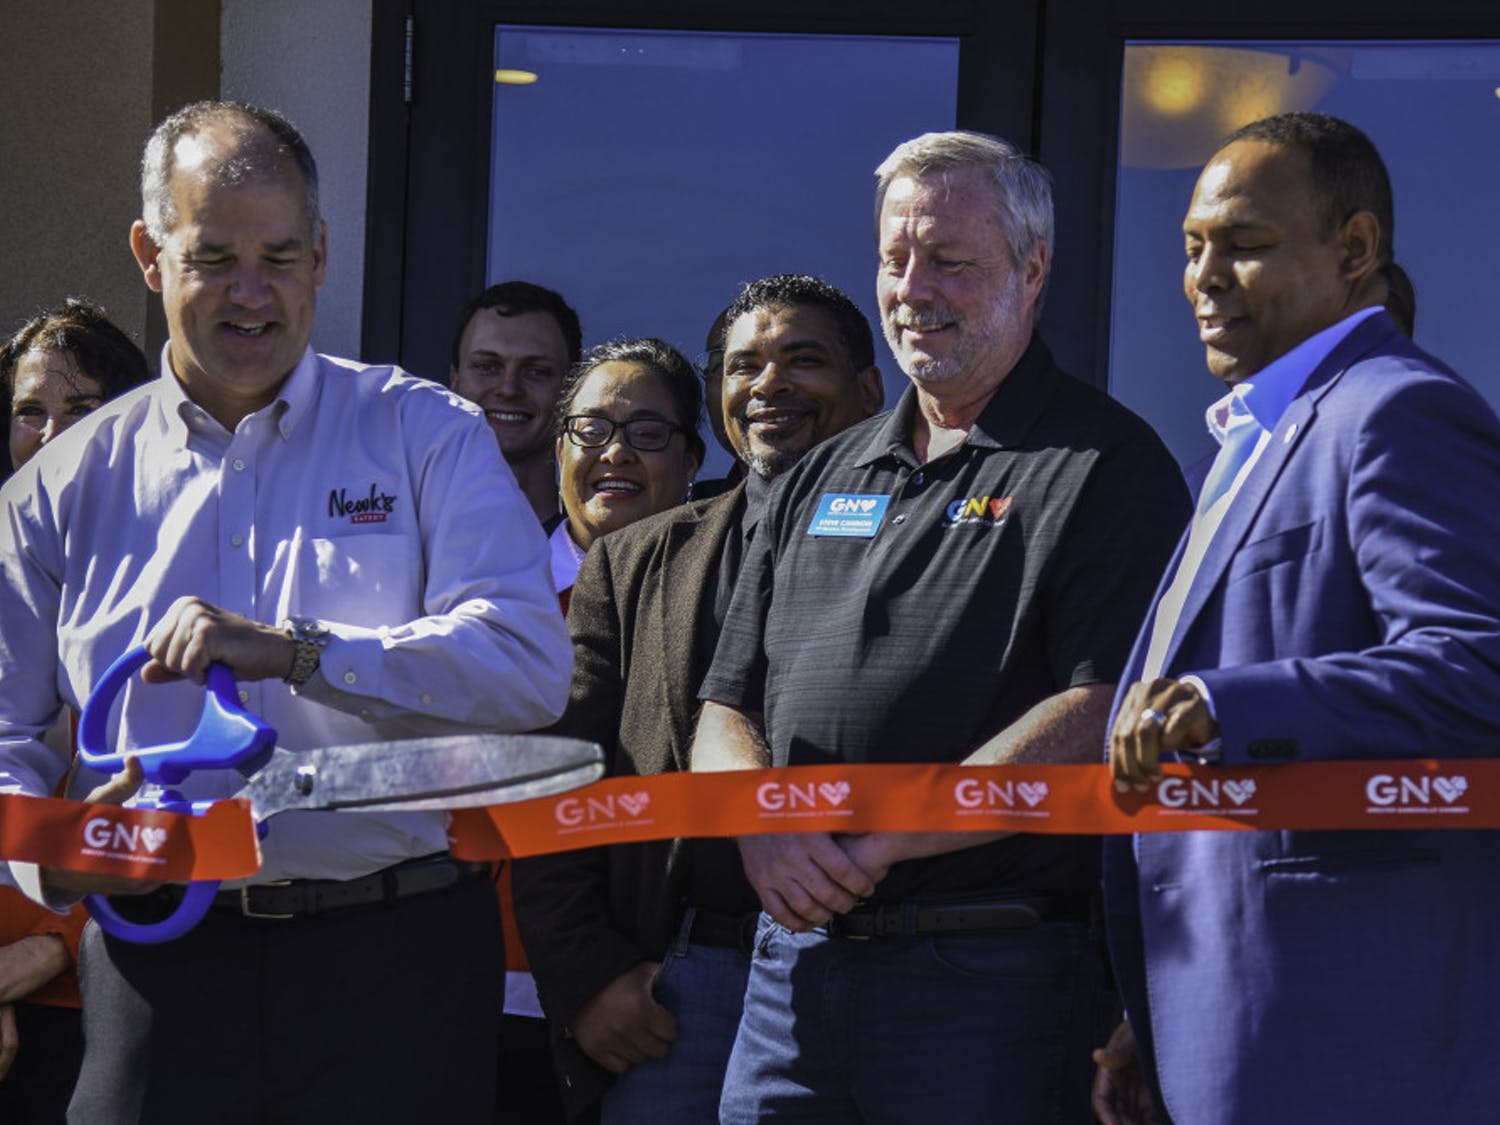 After over a year of anticipation, Newk's Grand Opening Celebration was held Friday. The event featured a ribbon-cuting ceremony with the Chamber of Commerce, free giveaways and performances from UF cheerleaders along with UF mascots Albert and Alberta.